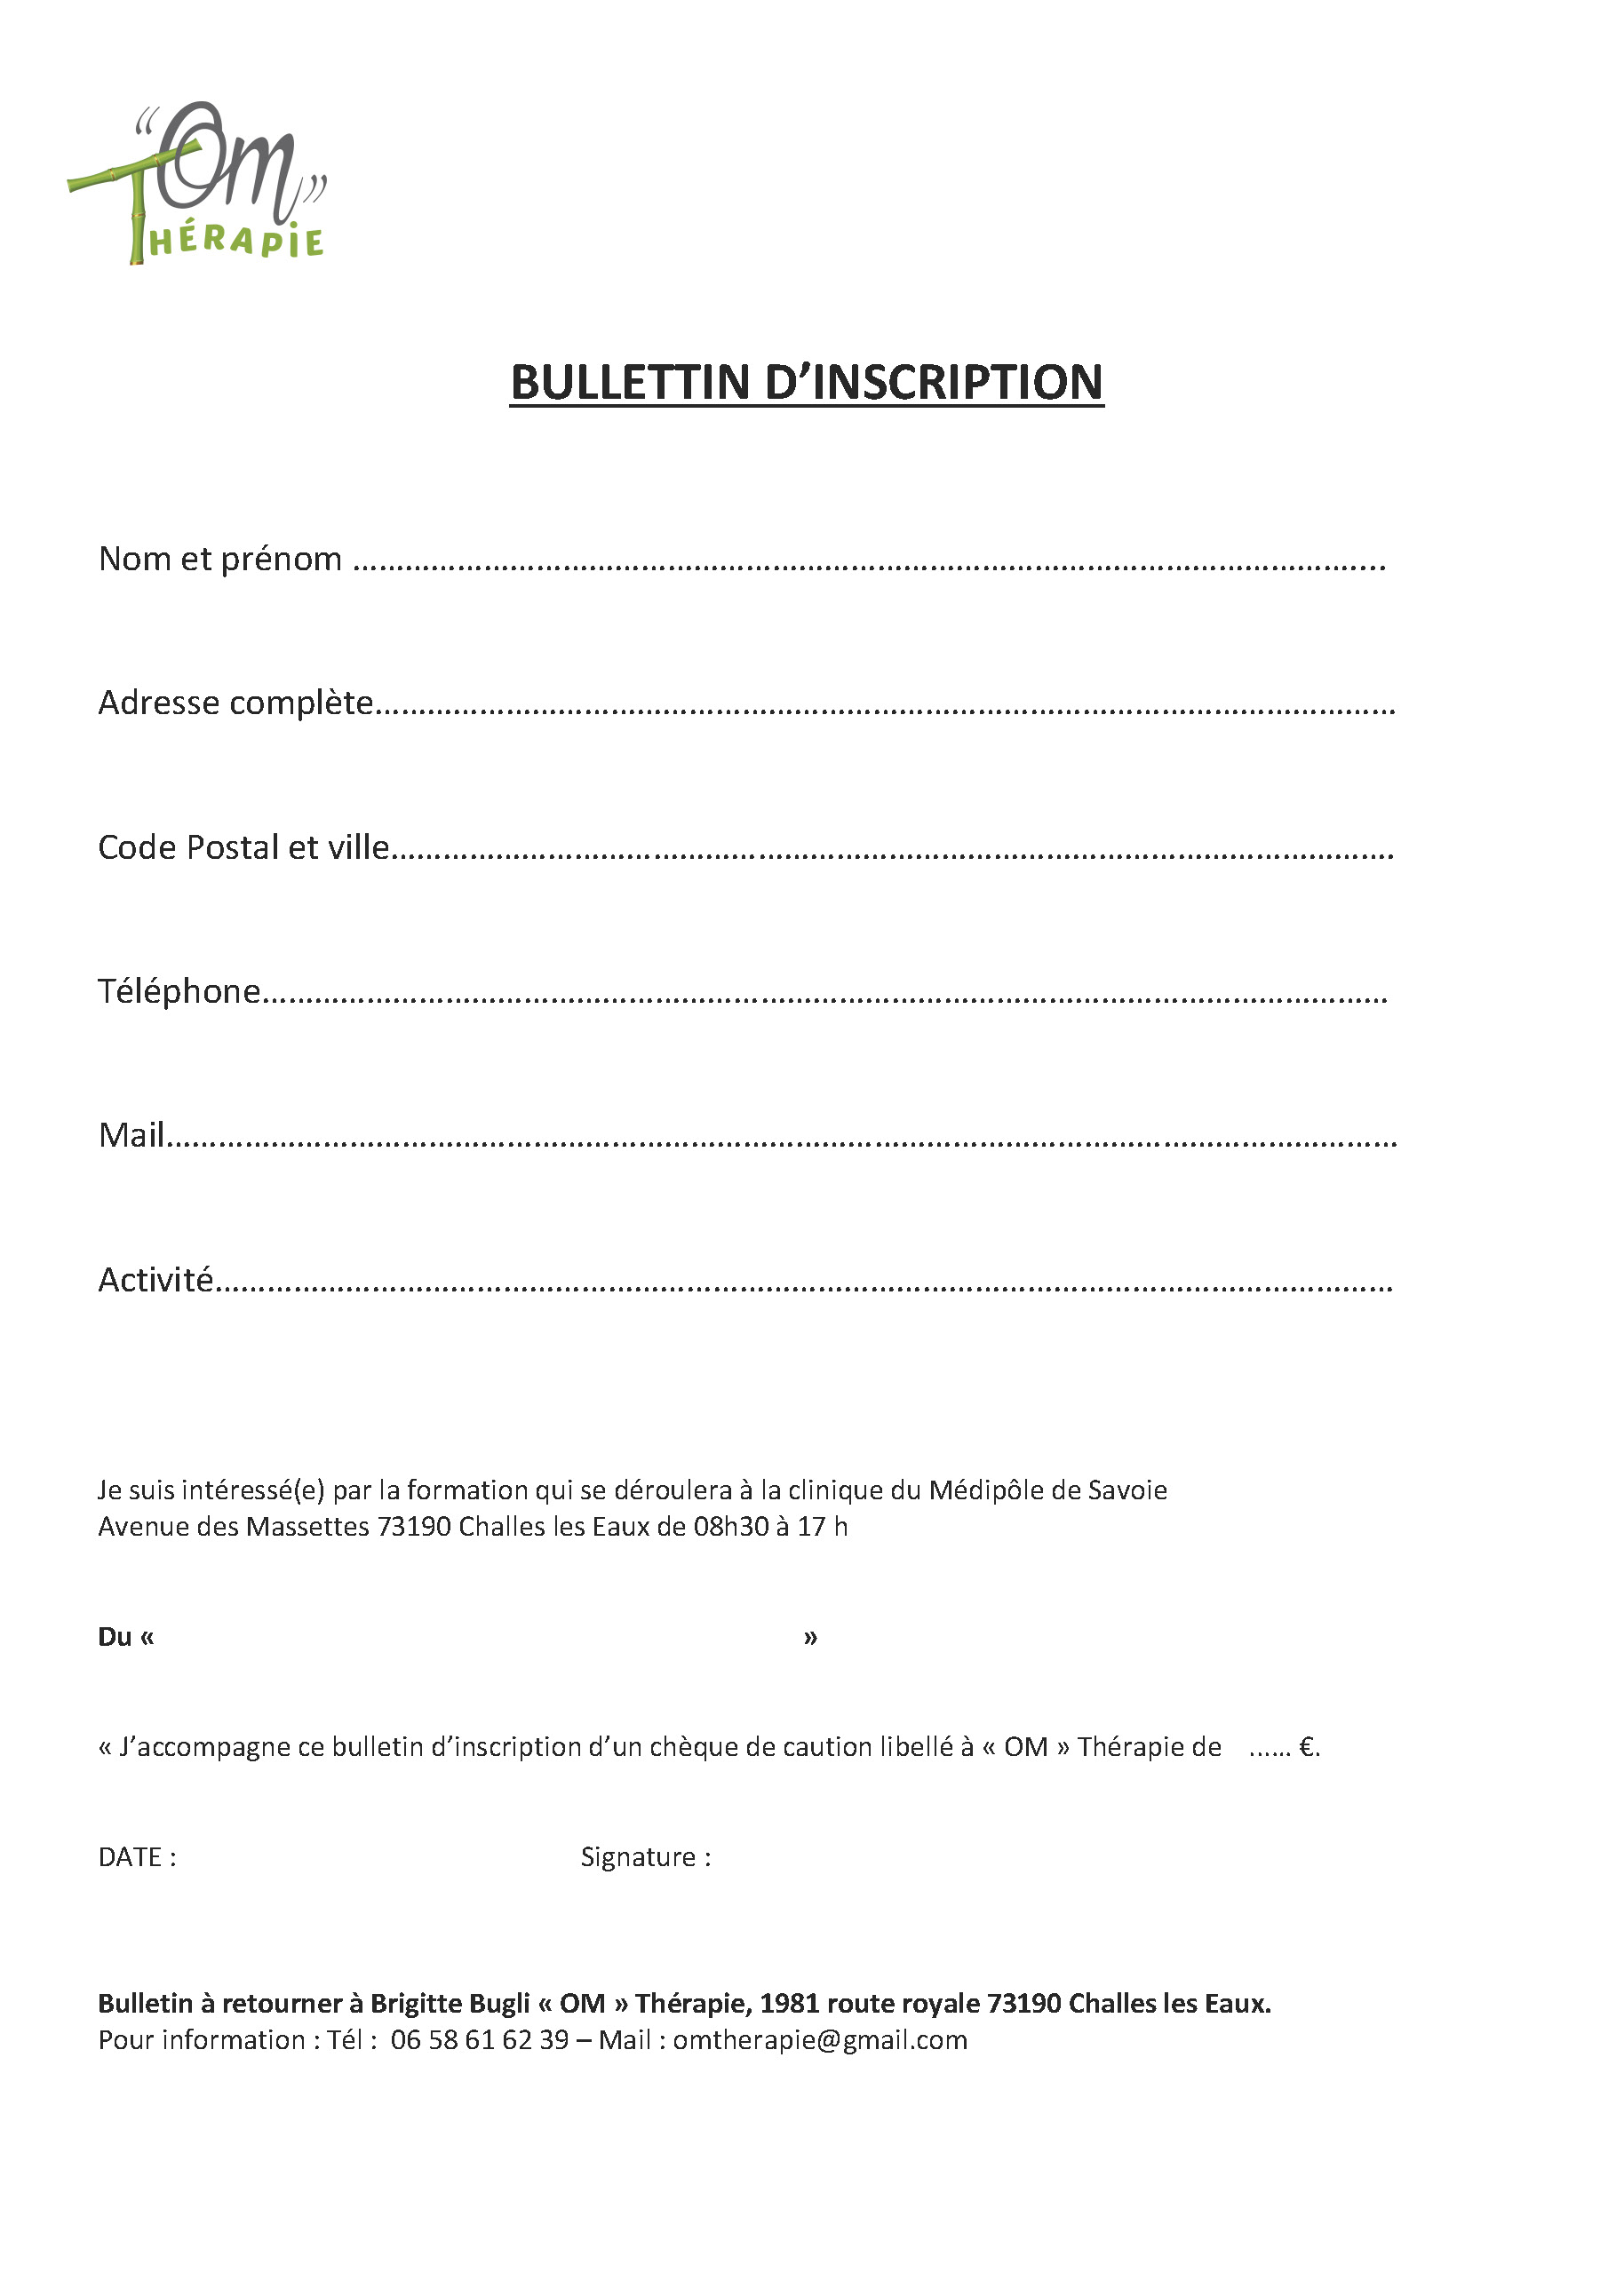 Bulletin d'inscription pour les formations